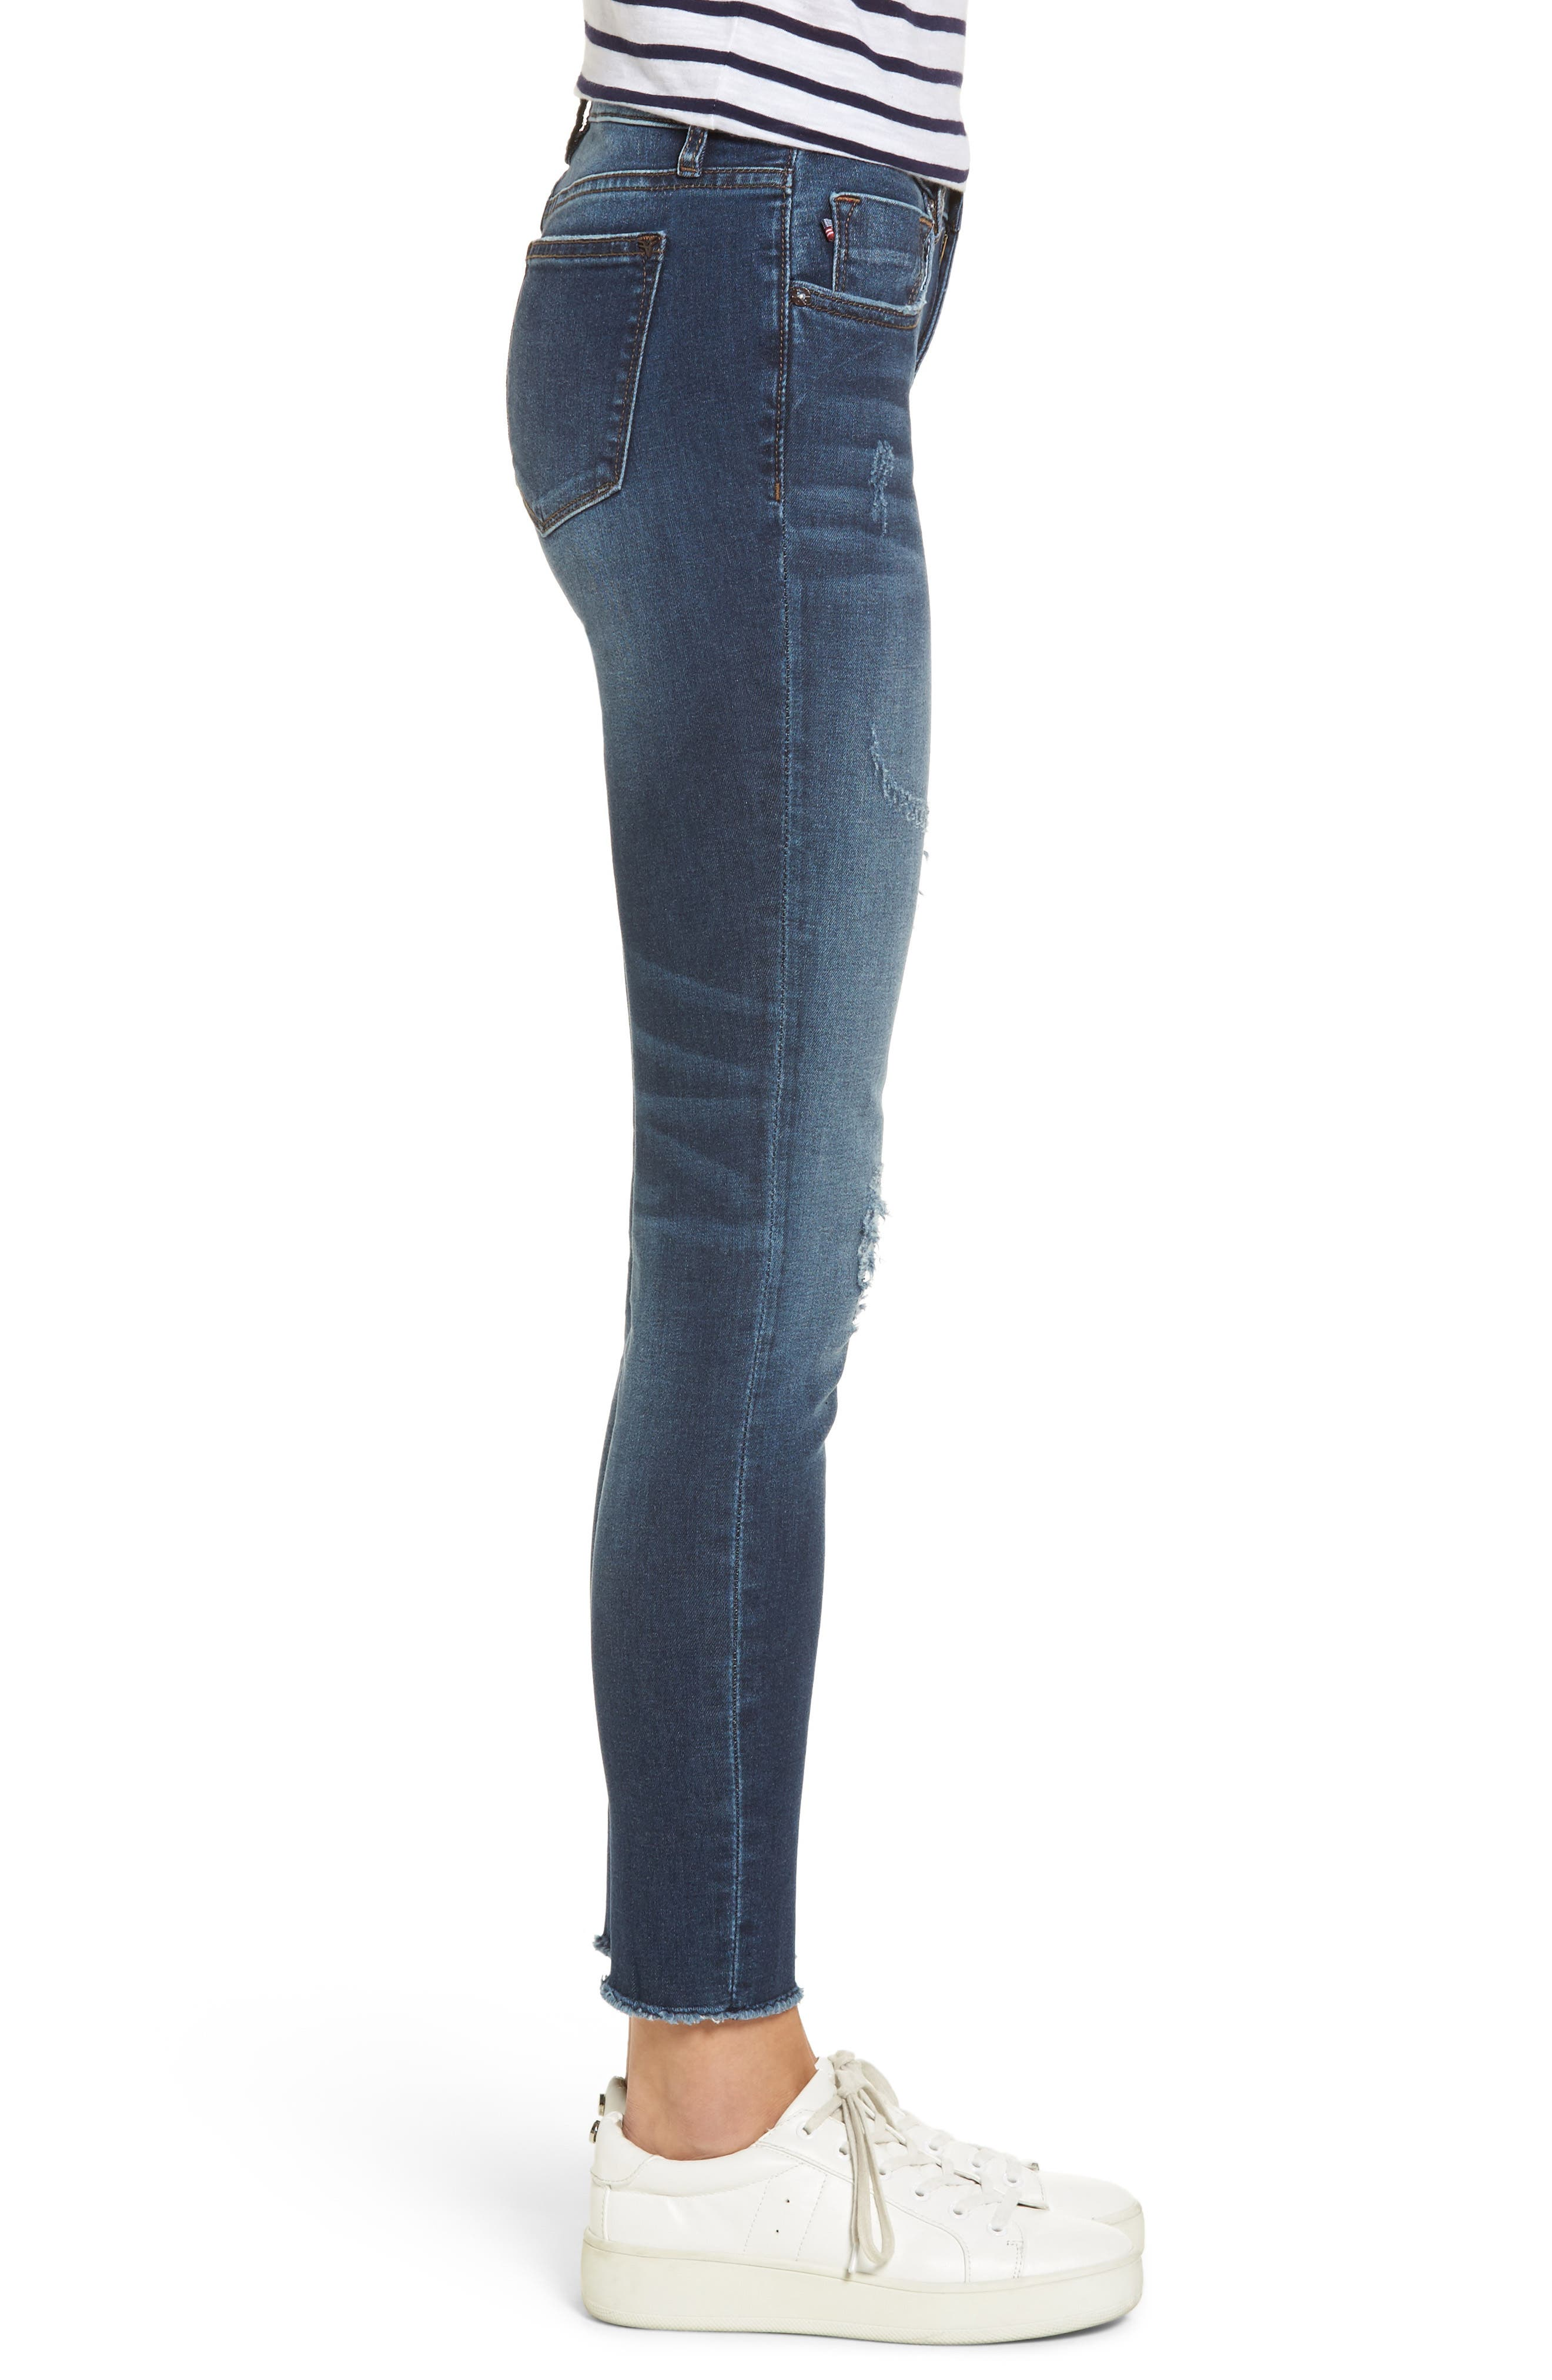 Jagger Distressed Skinny Jeans,                             Alternate thumbnail 3, color,                             403